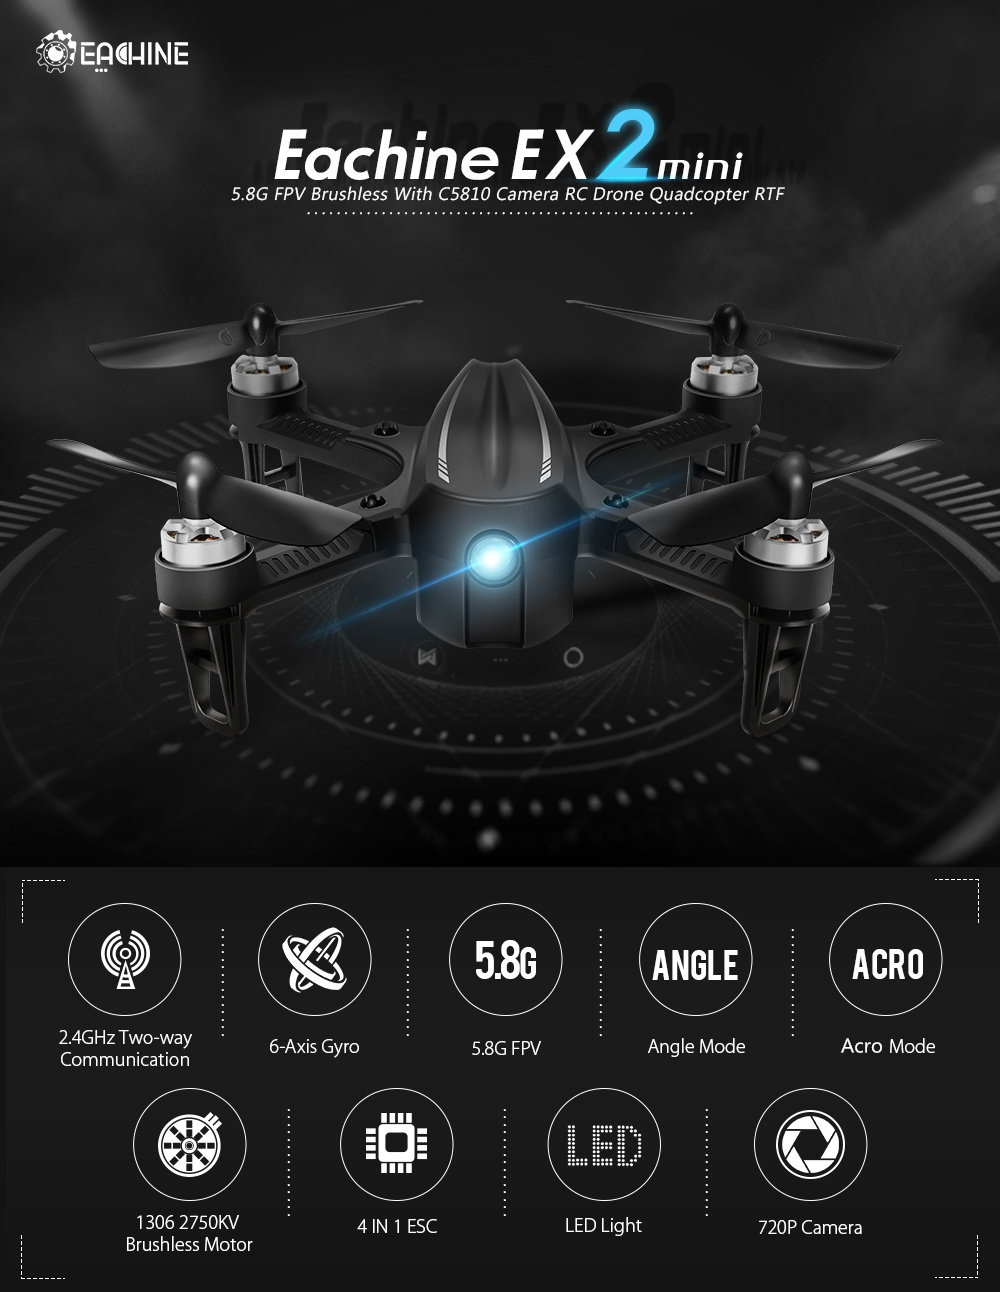 $67.89 for Eachine EX2mini Angle Mode Acro Mode With LED Light Brushless RC Drone Quadcopter RTF